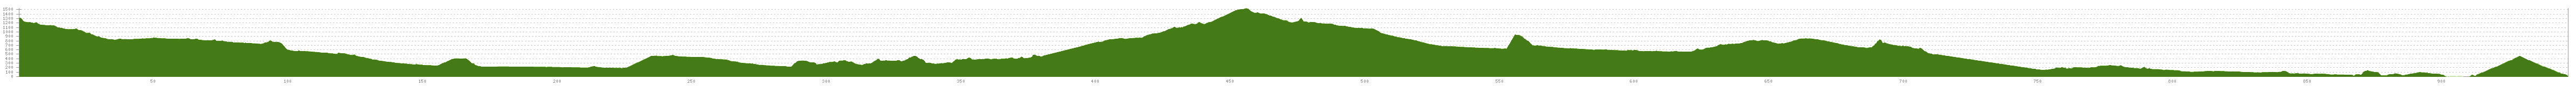 Elevation profile Cycle Tour Dolomiten-Adria